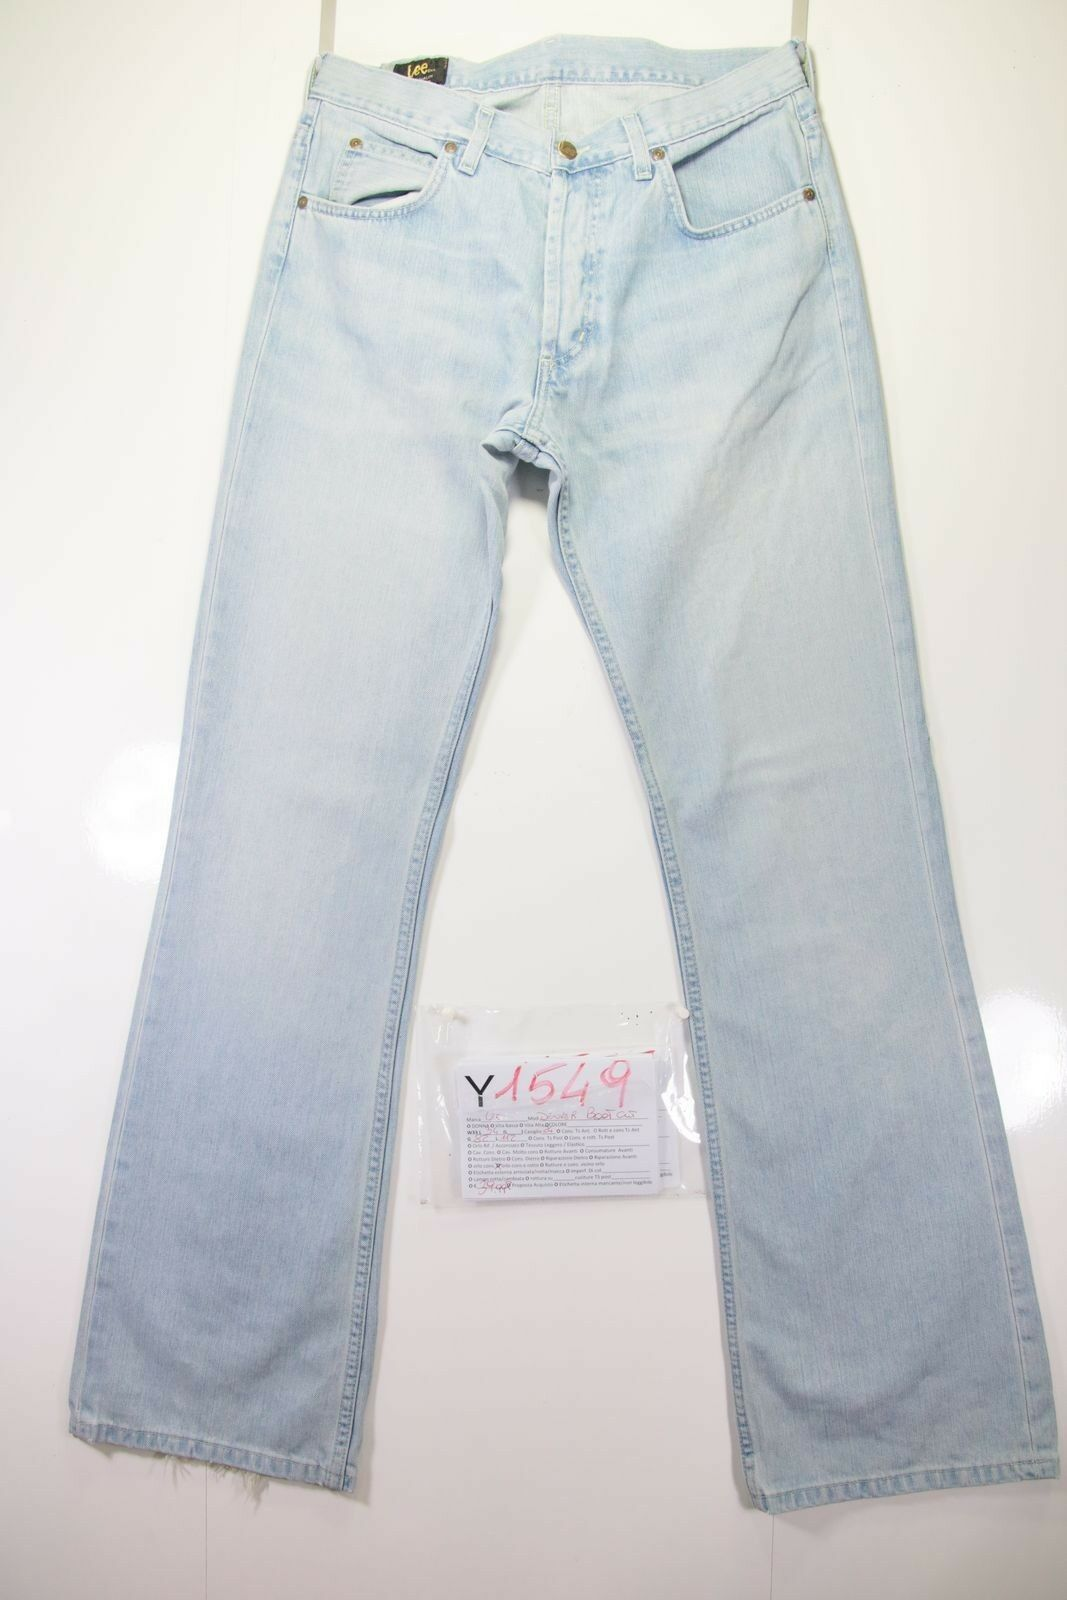 Lee Denver Bootcut ( Cod. Y1549) Tg.47 W33 L34 Jeans Used High Waist Flared